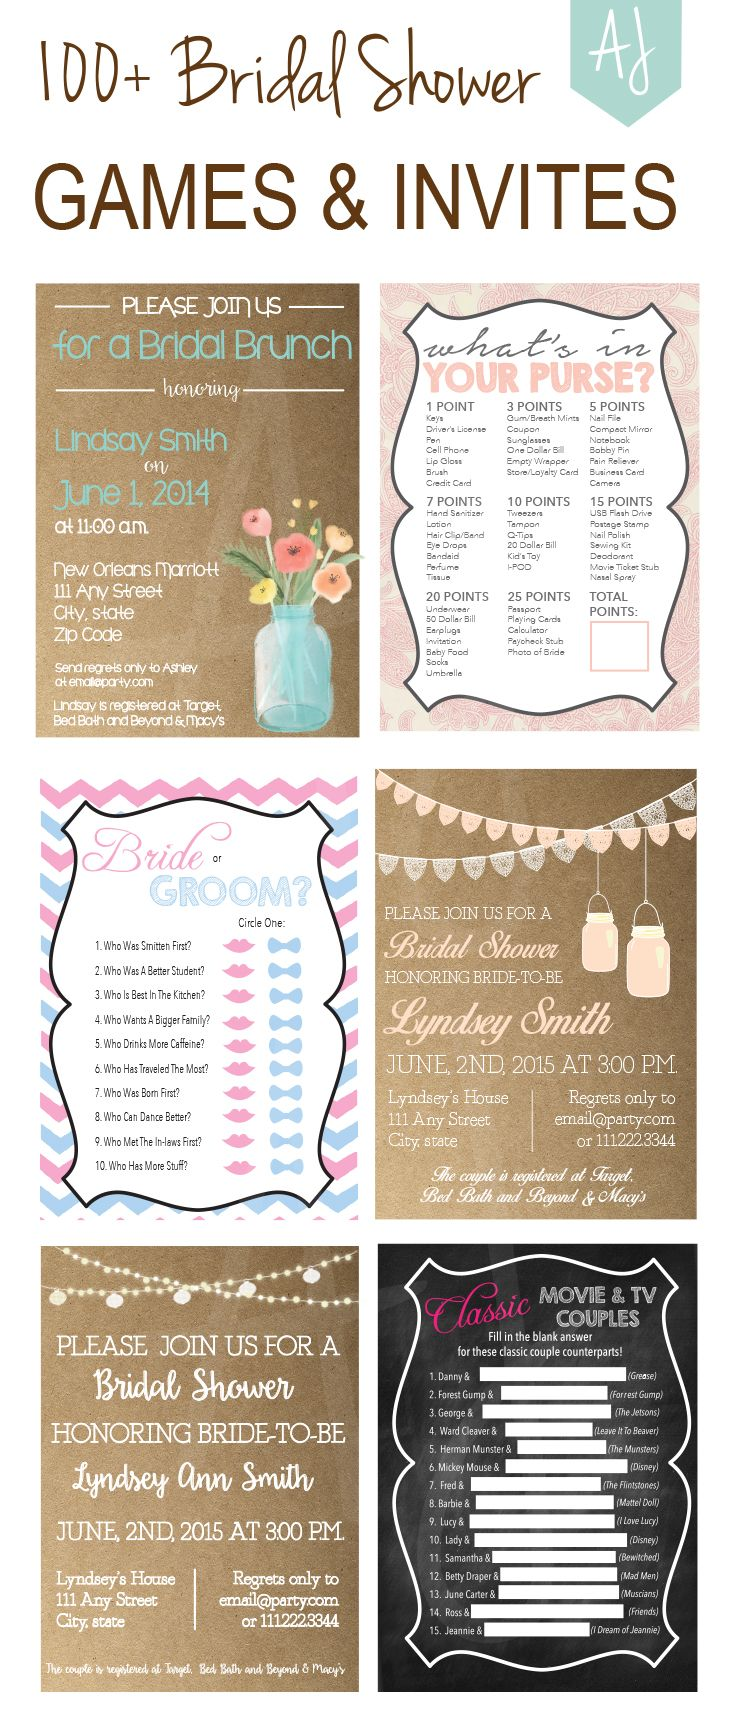 Printable bridal shower games and invites! click through for over 100 ideas to plan the perfect bridal shower.  You can add on matching thank you cards, decorations, or favors as well. Unique games ranging from the classic, whats in your purse to famous movie couples.  Invites rang from rustic to elegant, from vintage to modern. Only at Aesthetic Journeys!